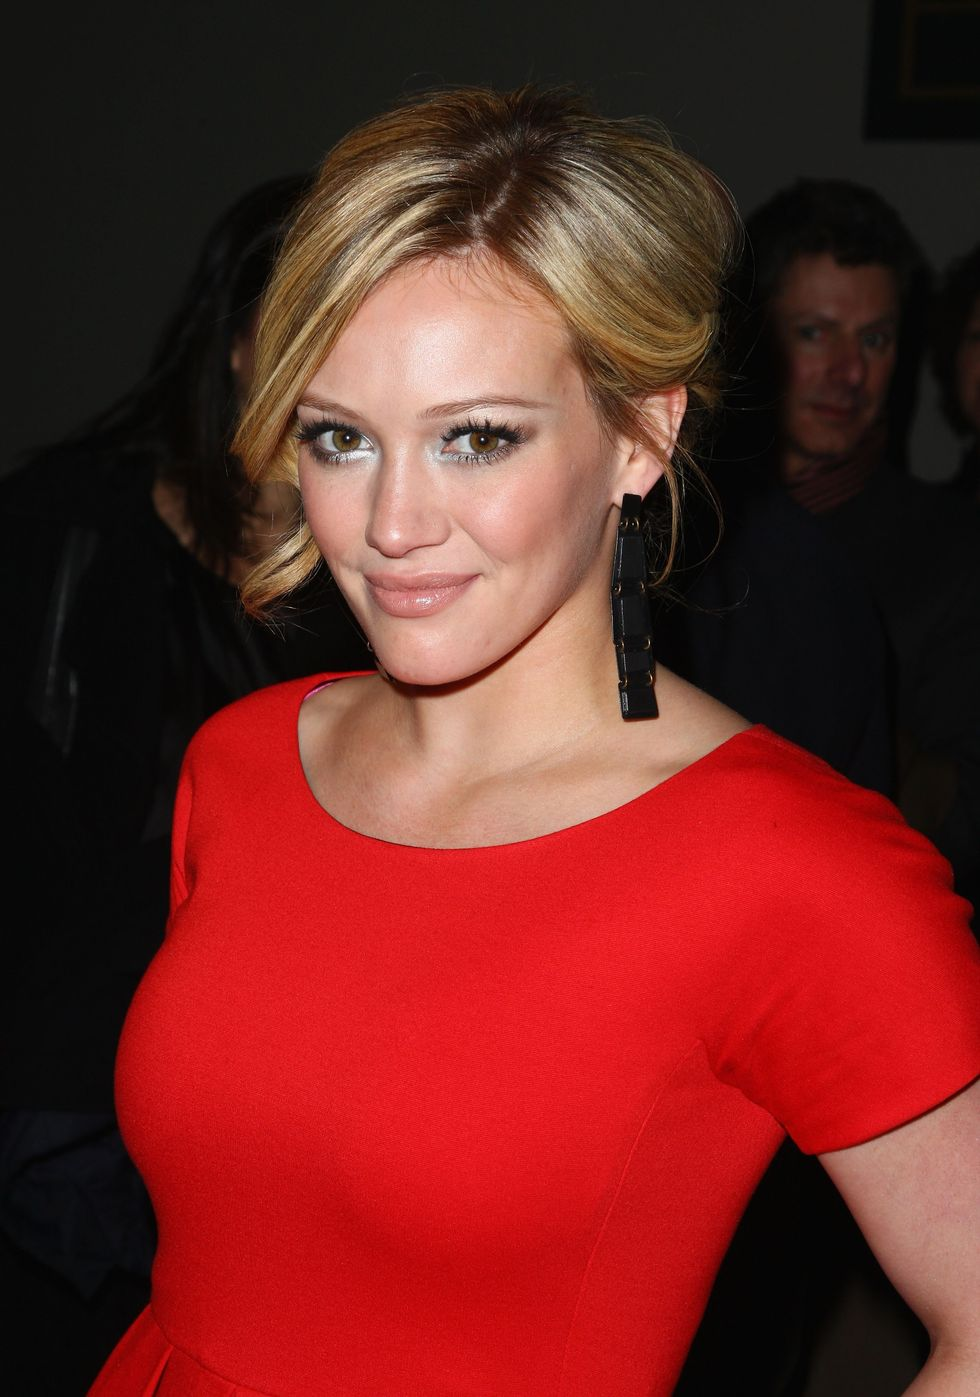 hilary-duff-dkny-fall-2009-fashion-show-01